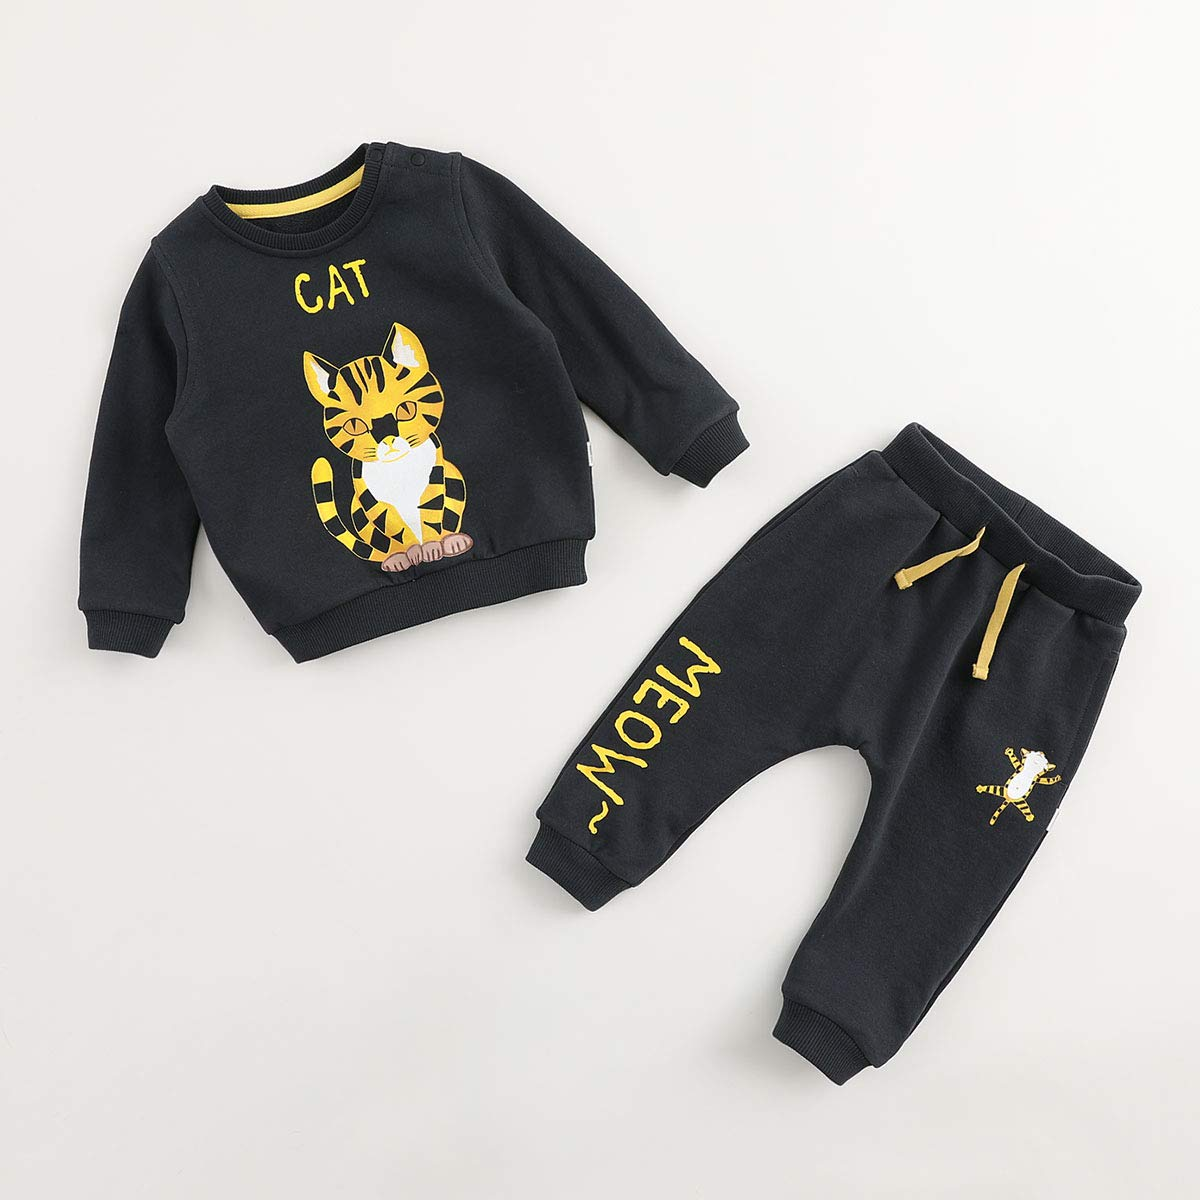 marc janie Girls Boys 2 Pieces Aninals Graphic Sweatshirts Jogger Set